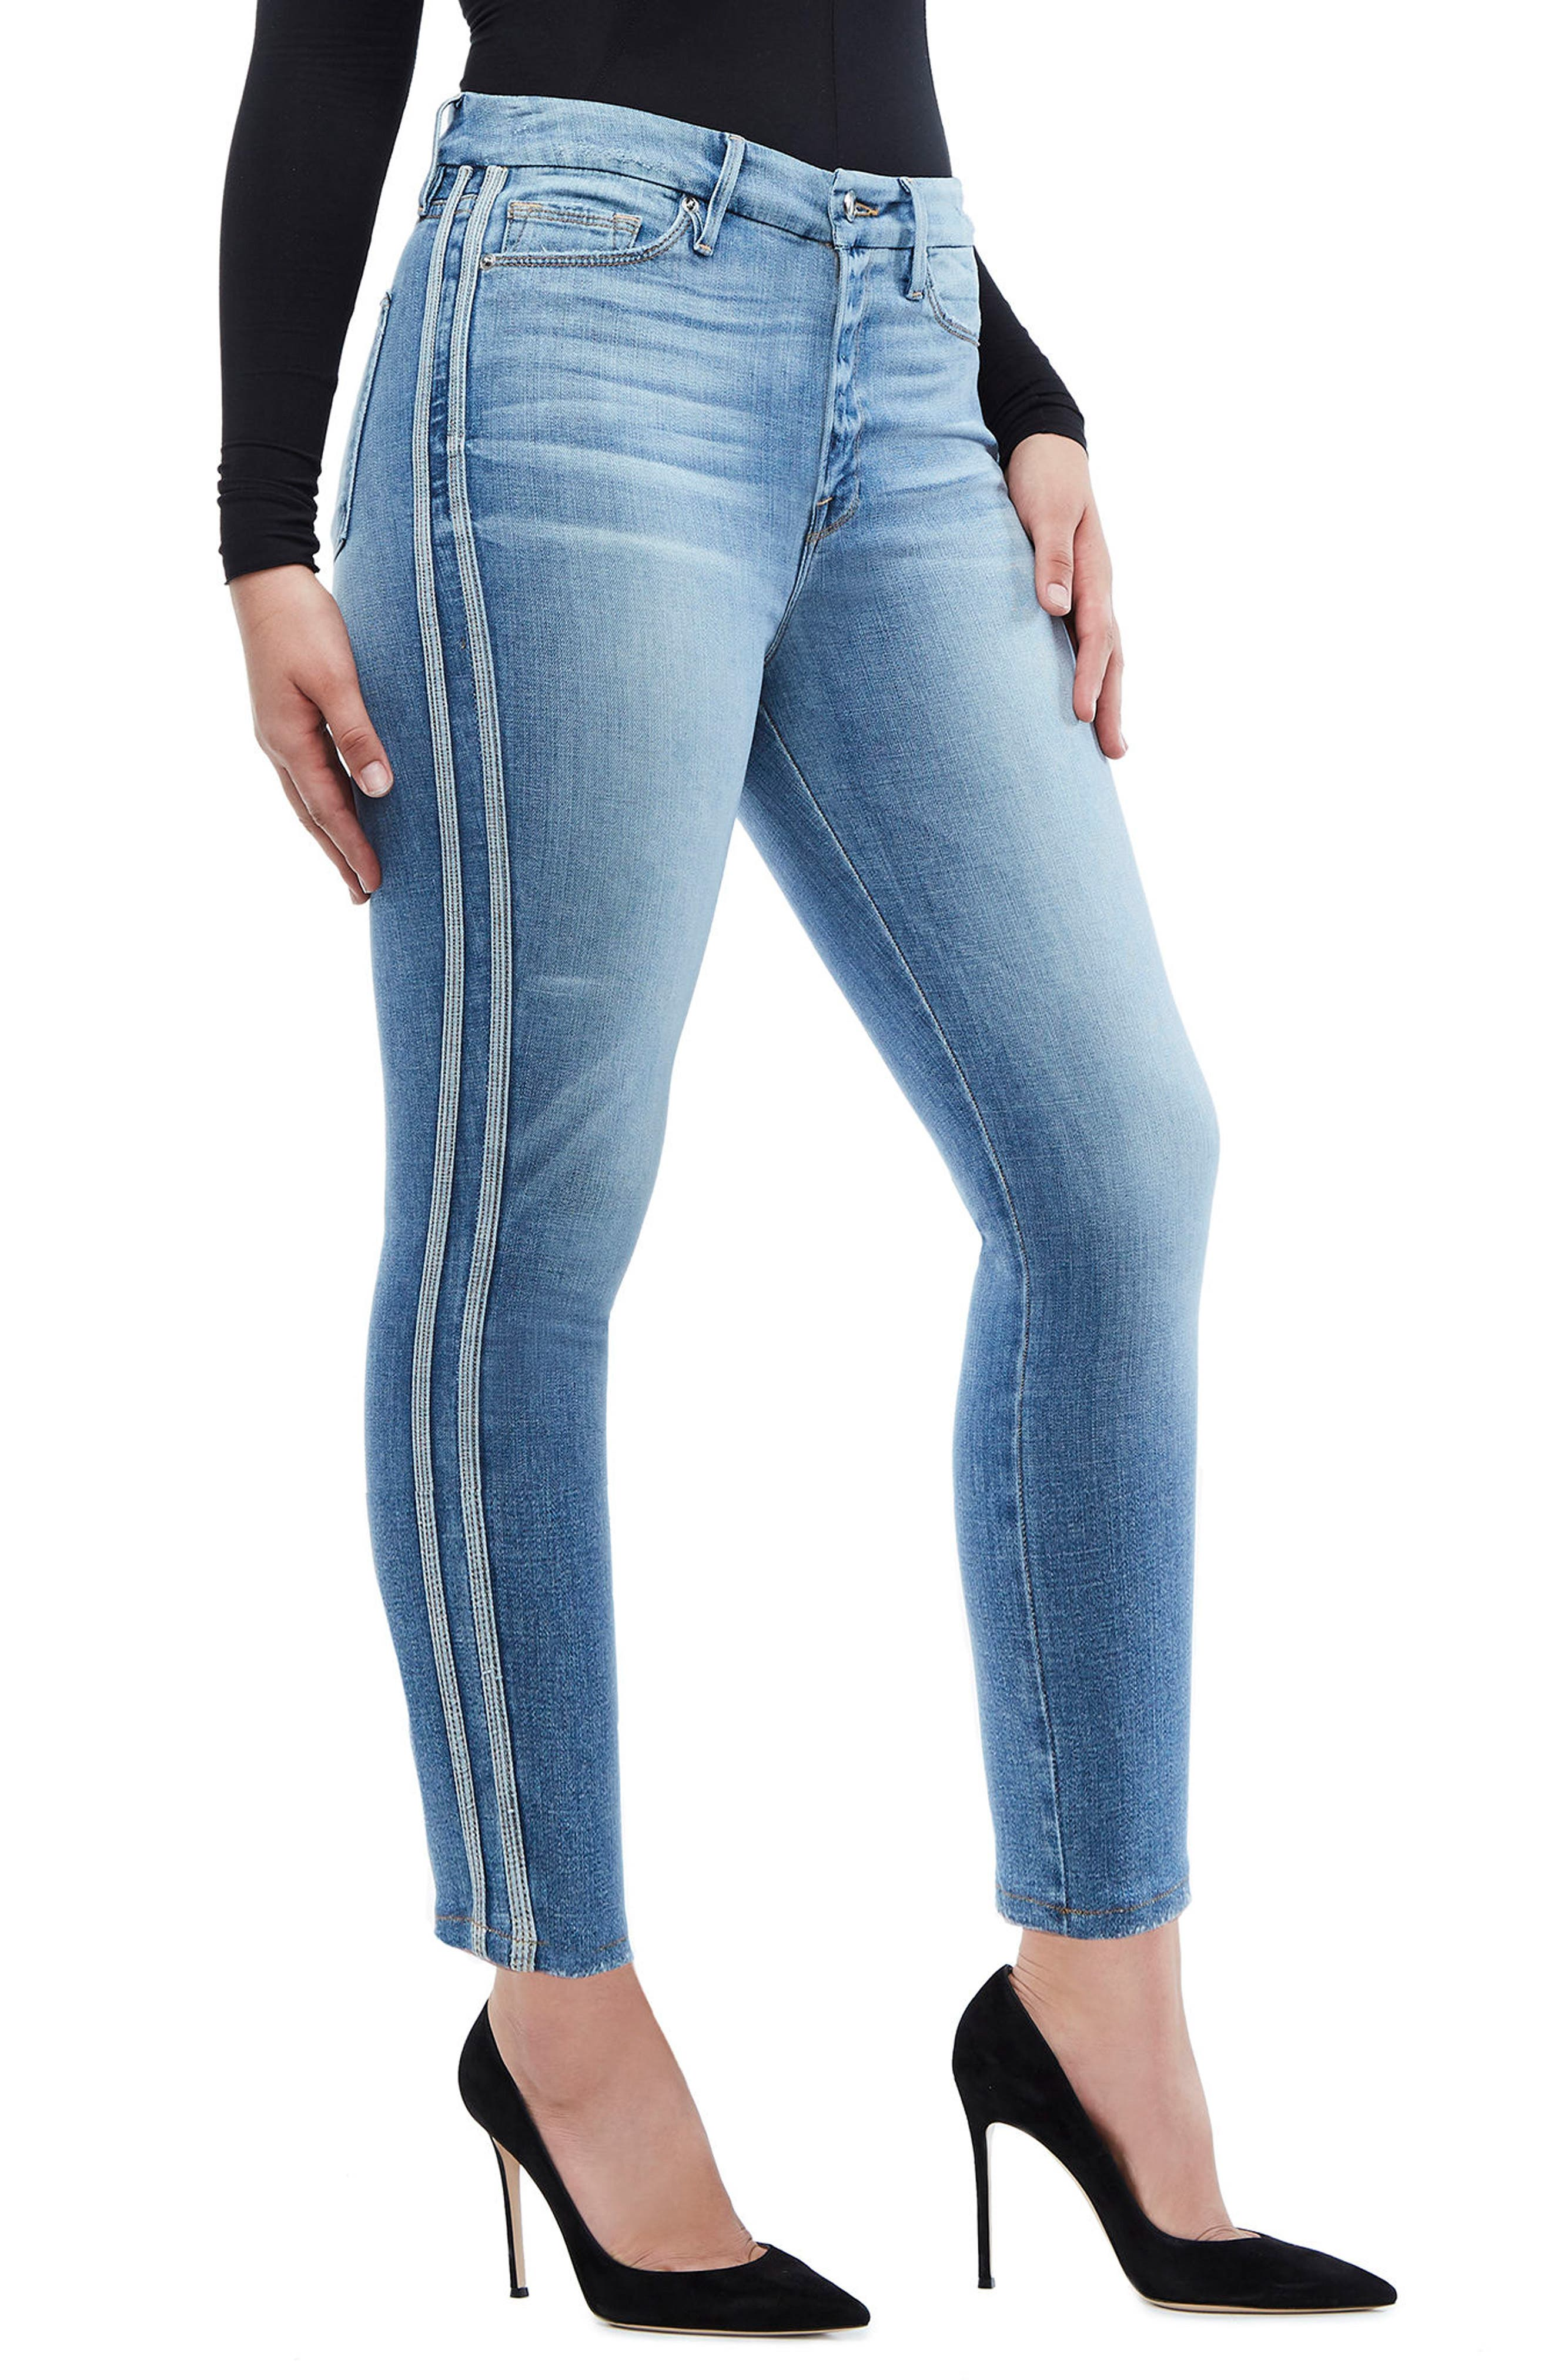 Alternate Image 1 Selected - Good American Good Waist Athletic Stripe High Waist Ankle Straight Leg Jeans (Blue 121) (Regular & Plus Size)